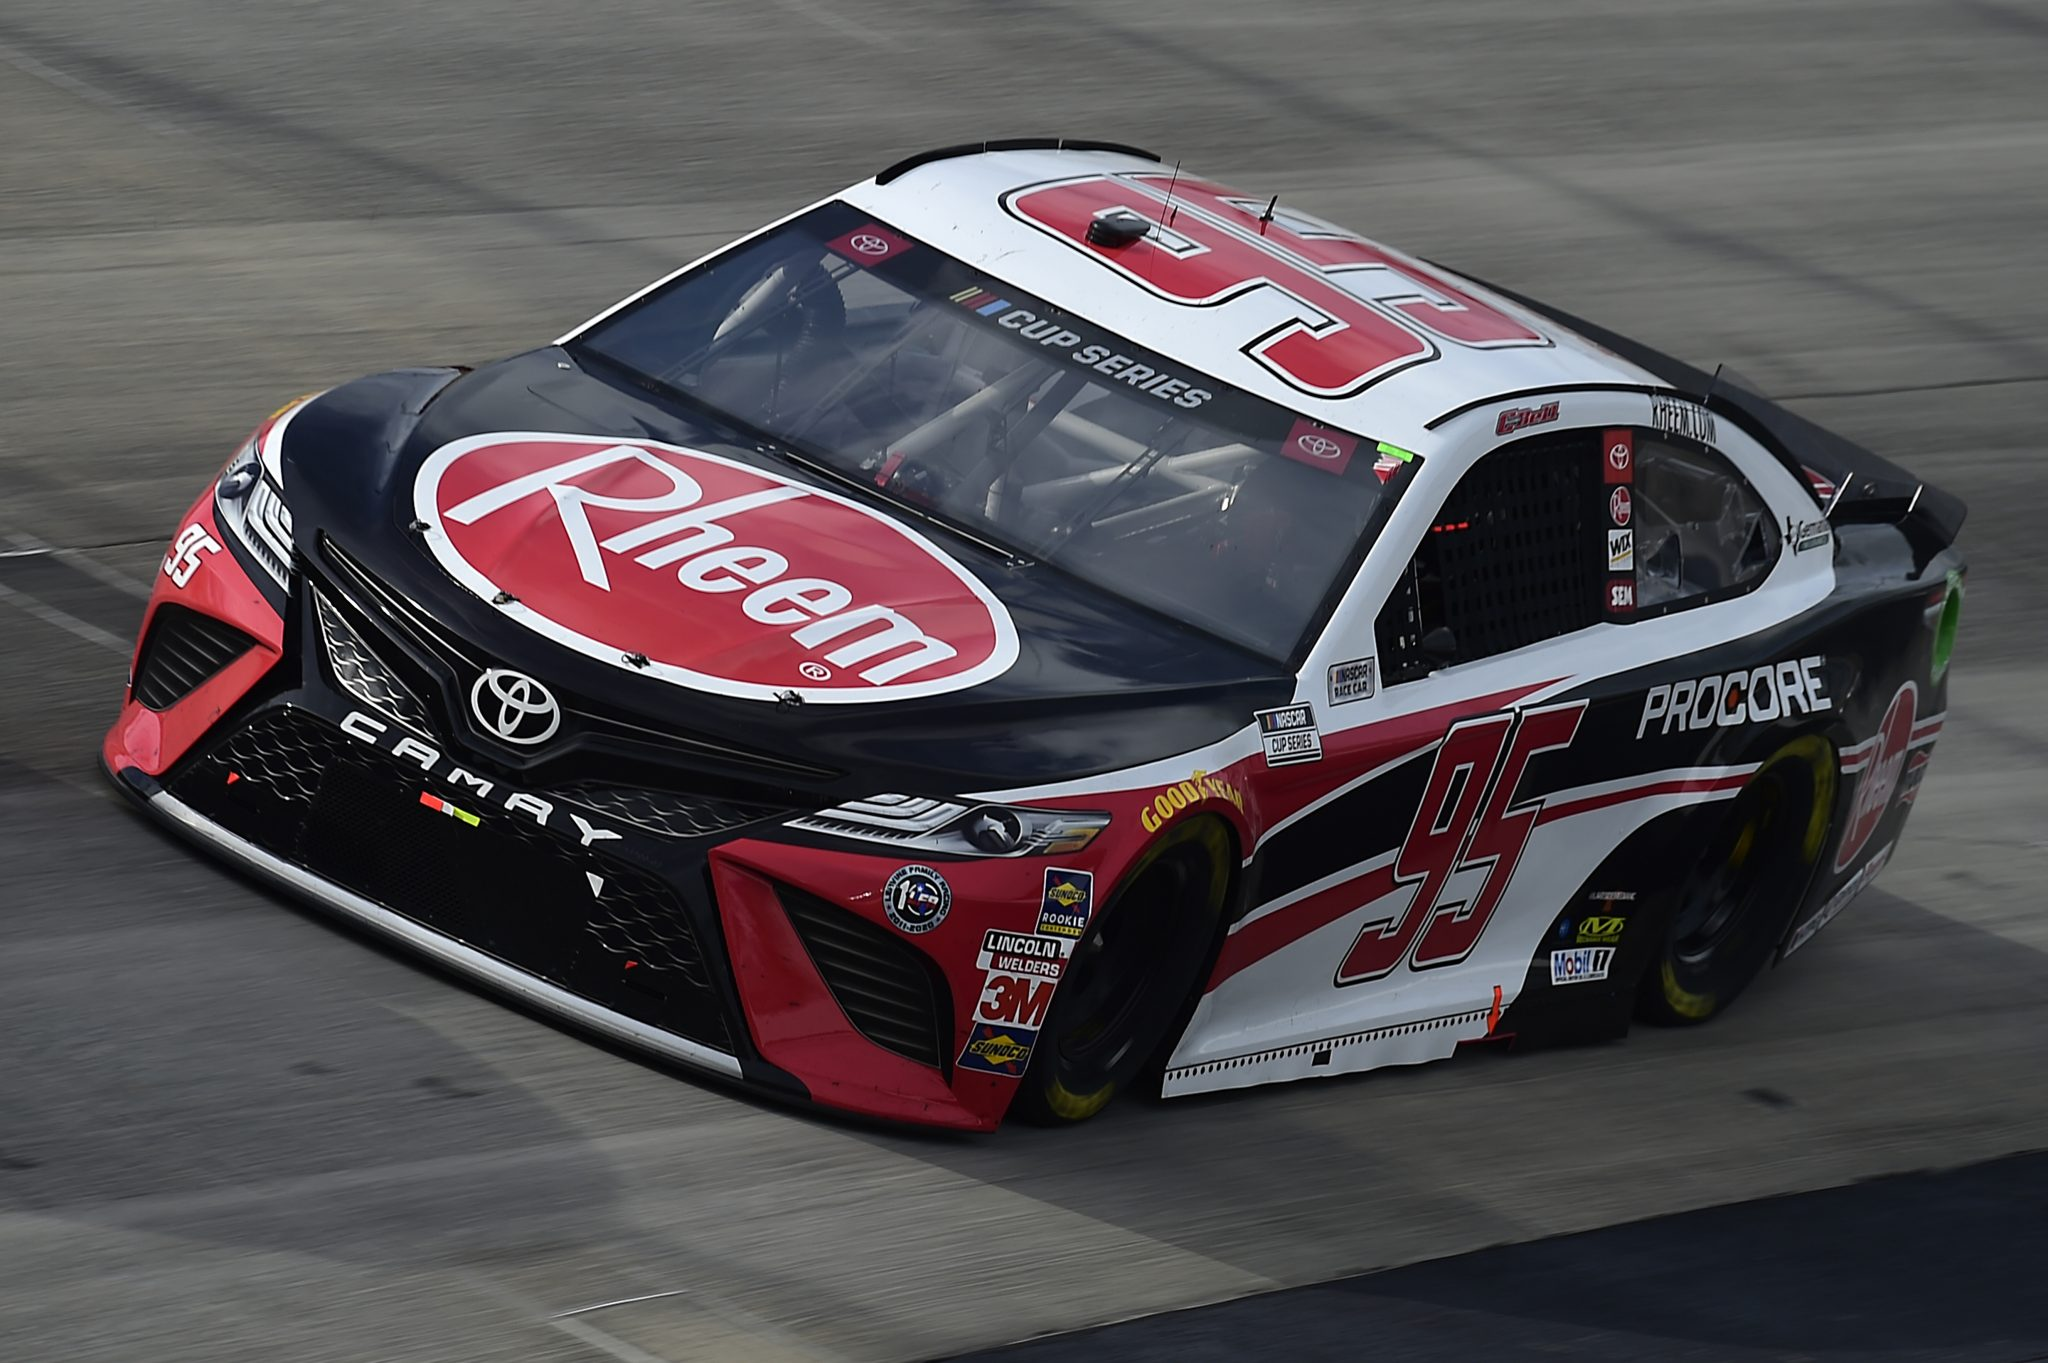 DOVER, DELAWARE - AUGUST 22: Christopher Bell, driver of the #95 Rheem Toyota, drives during the NASCAR Cup Series Drydene 311 at Dover International Speedway on August 22, 2020 in Dover, Delaware. (Photo by Jared C. Tilton/Getty Images) | Getty Images